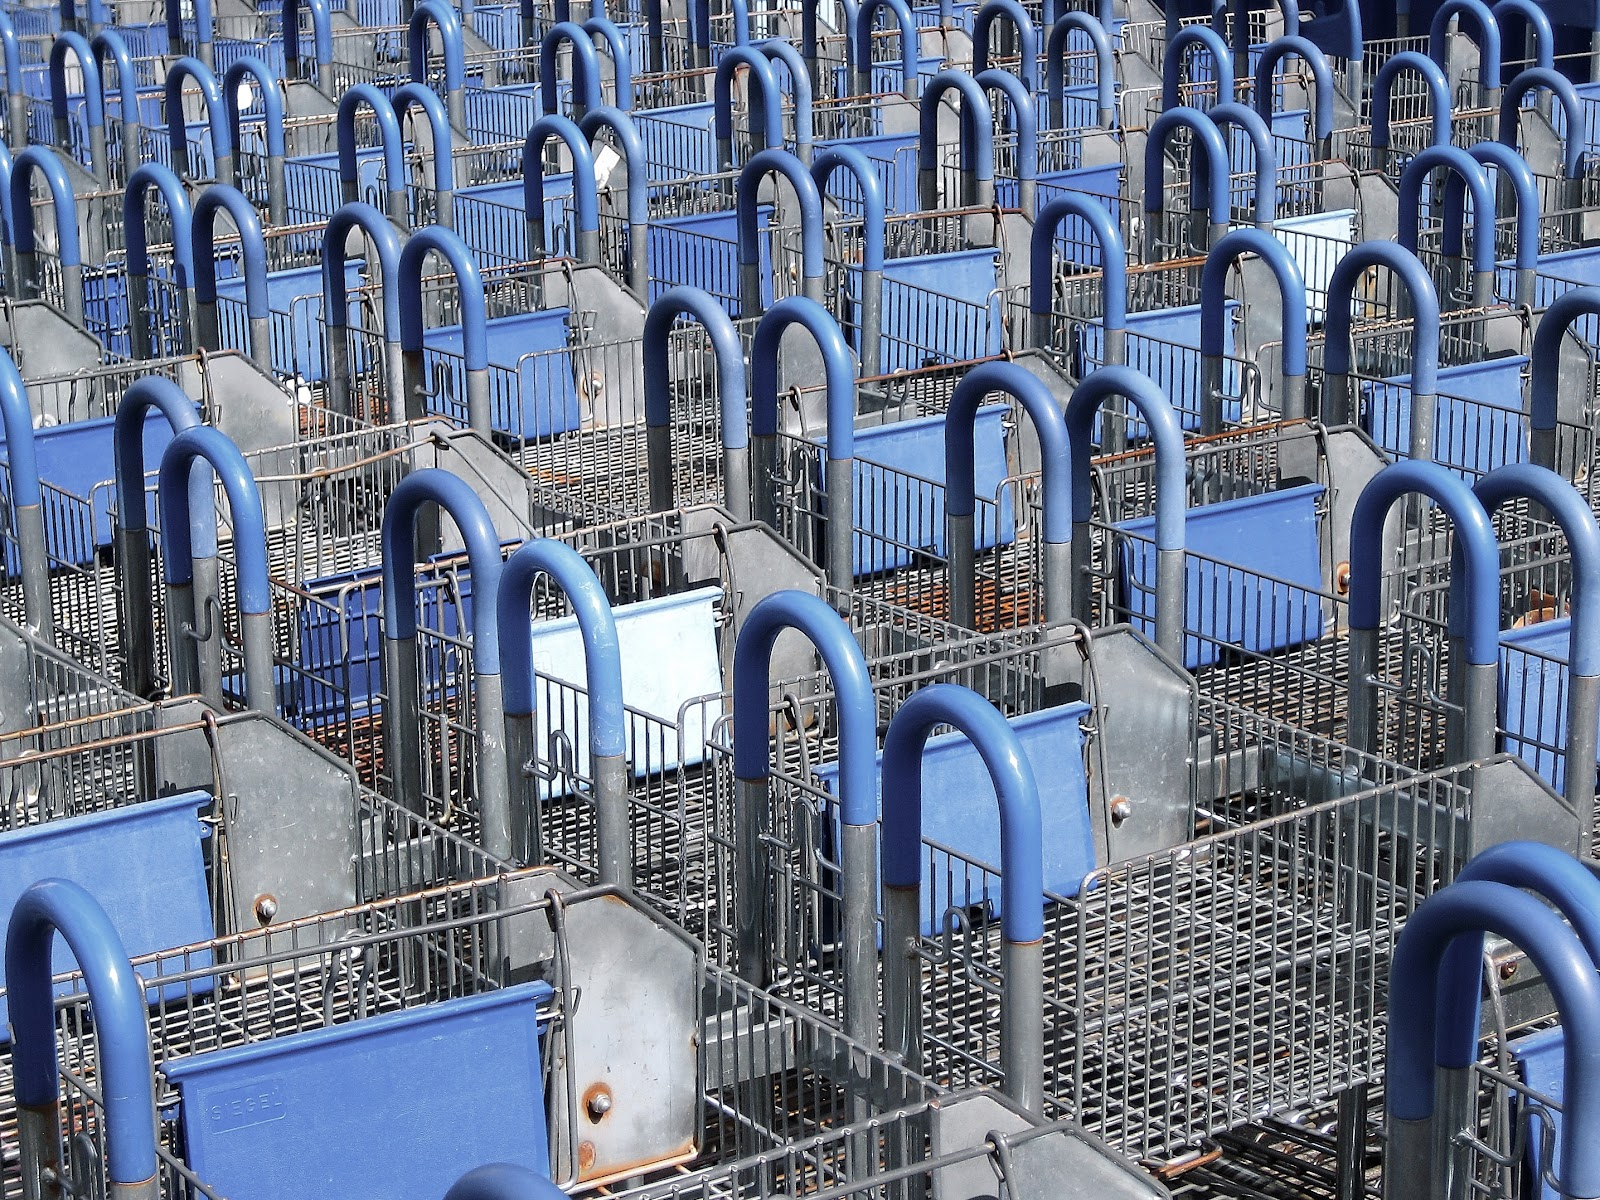 Many empty shopping carts symbolizing potential e-commerce purchases